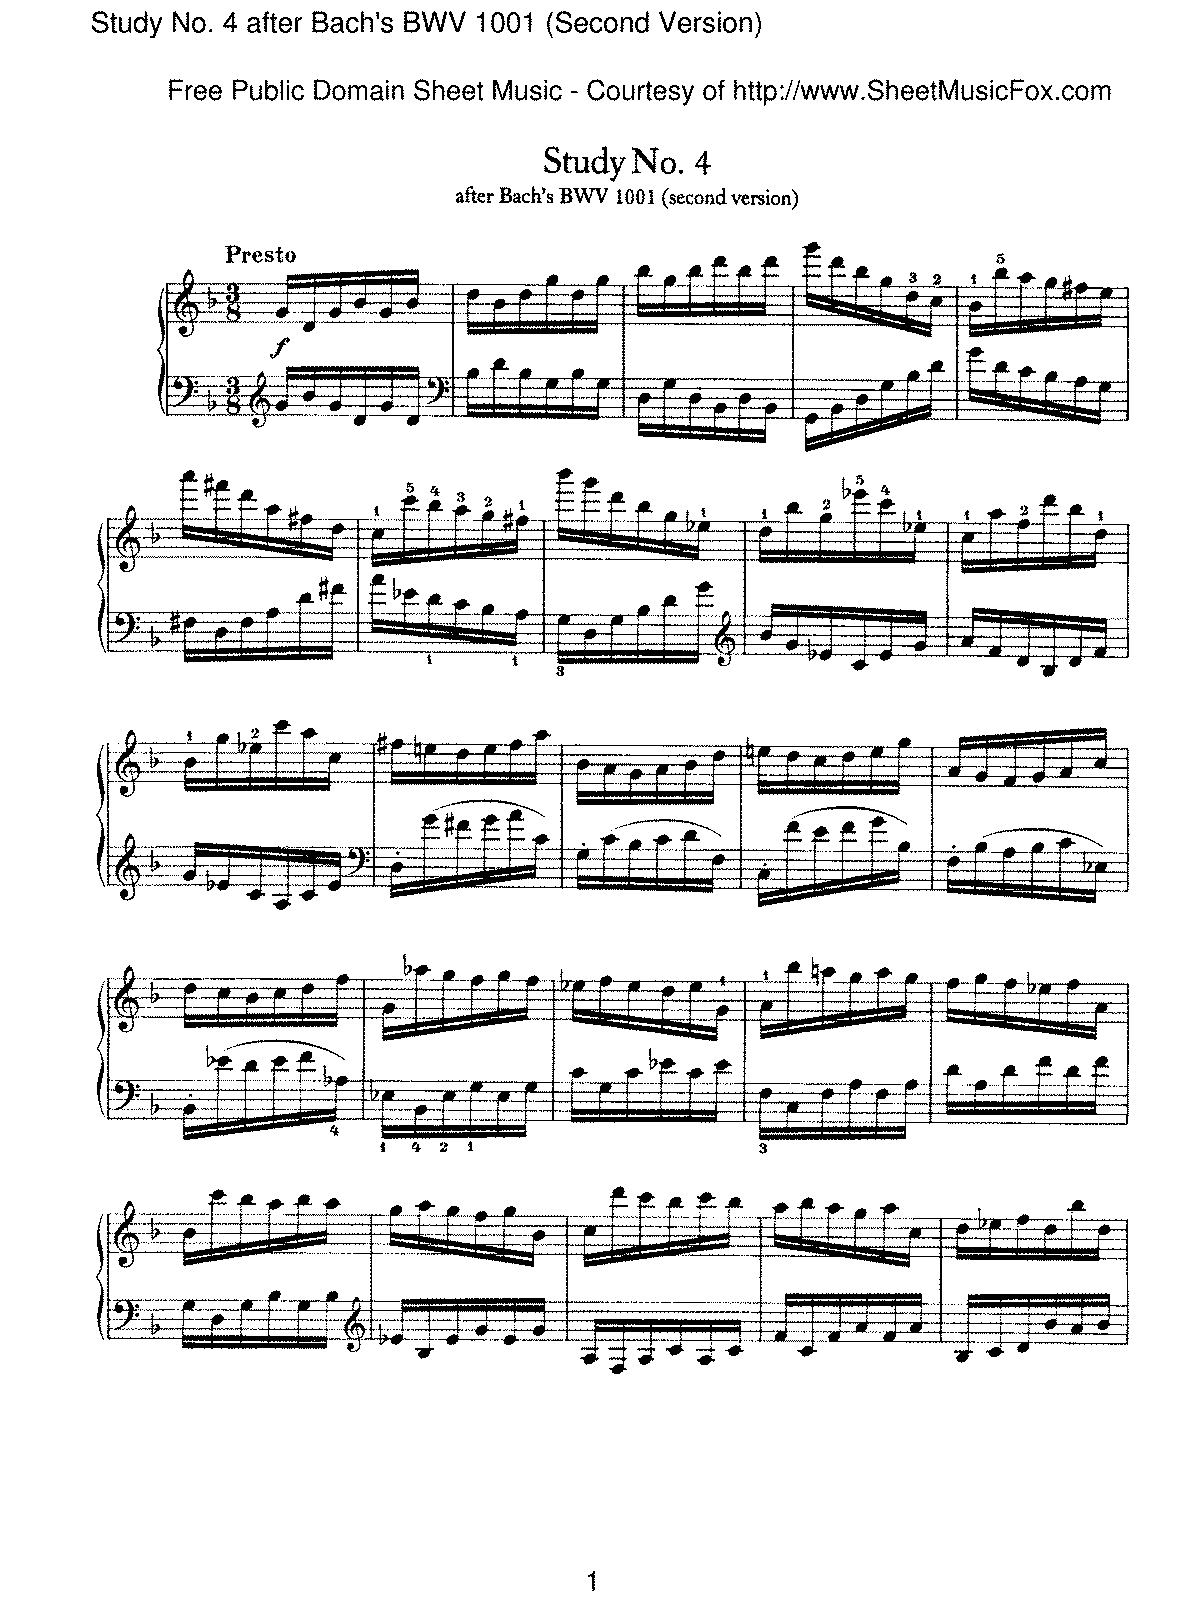 Brahms - Study No.4 after Bach's BWV 1001 (Second Version).pdf